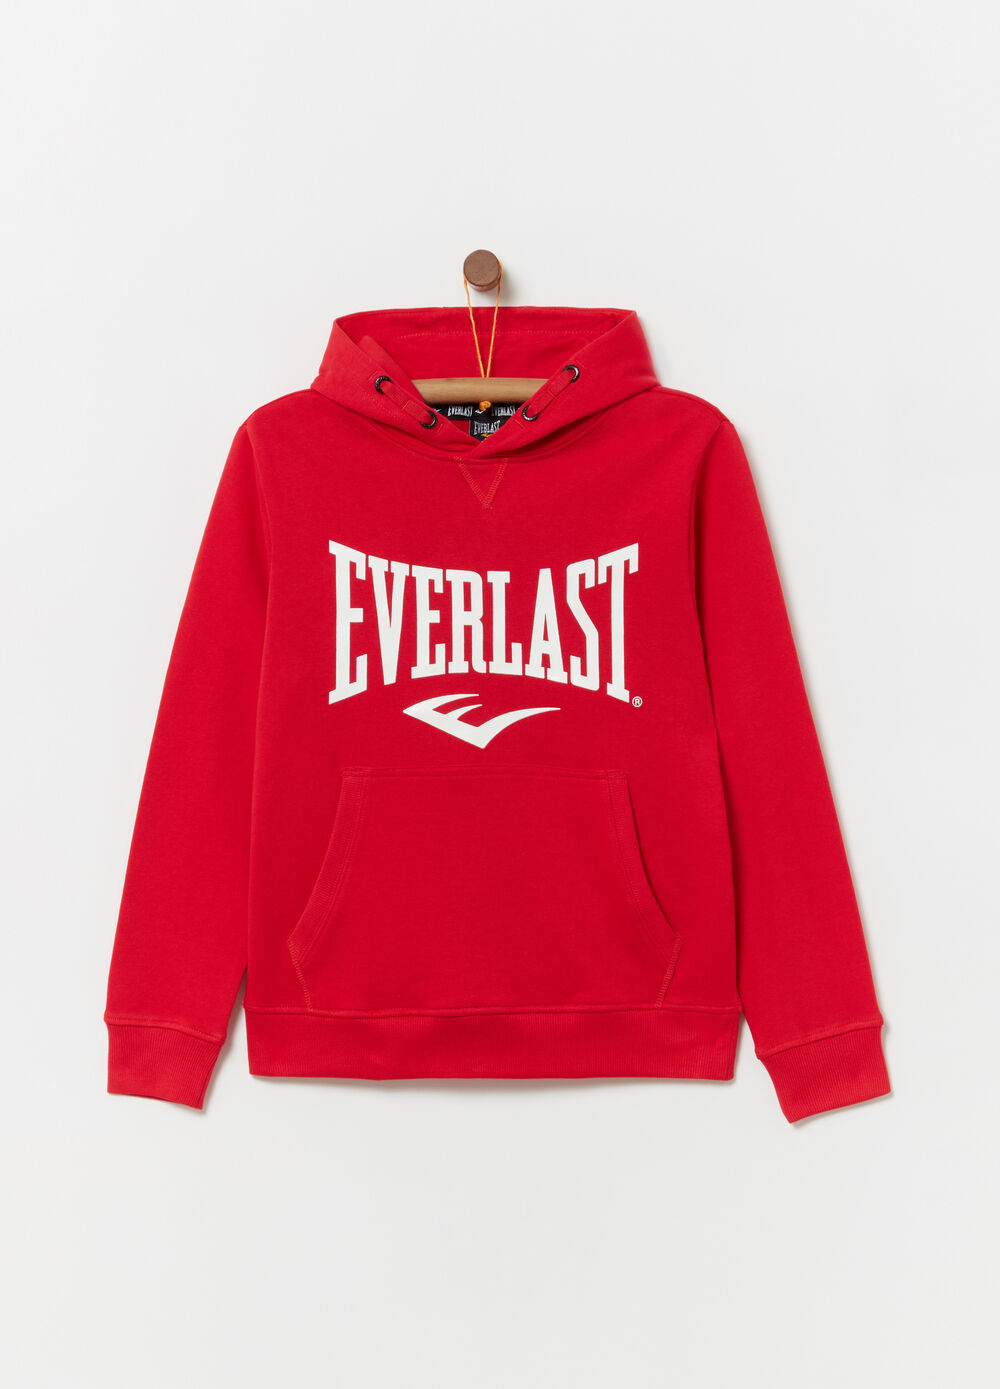 Everlast sweatshirt with hood and pocket